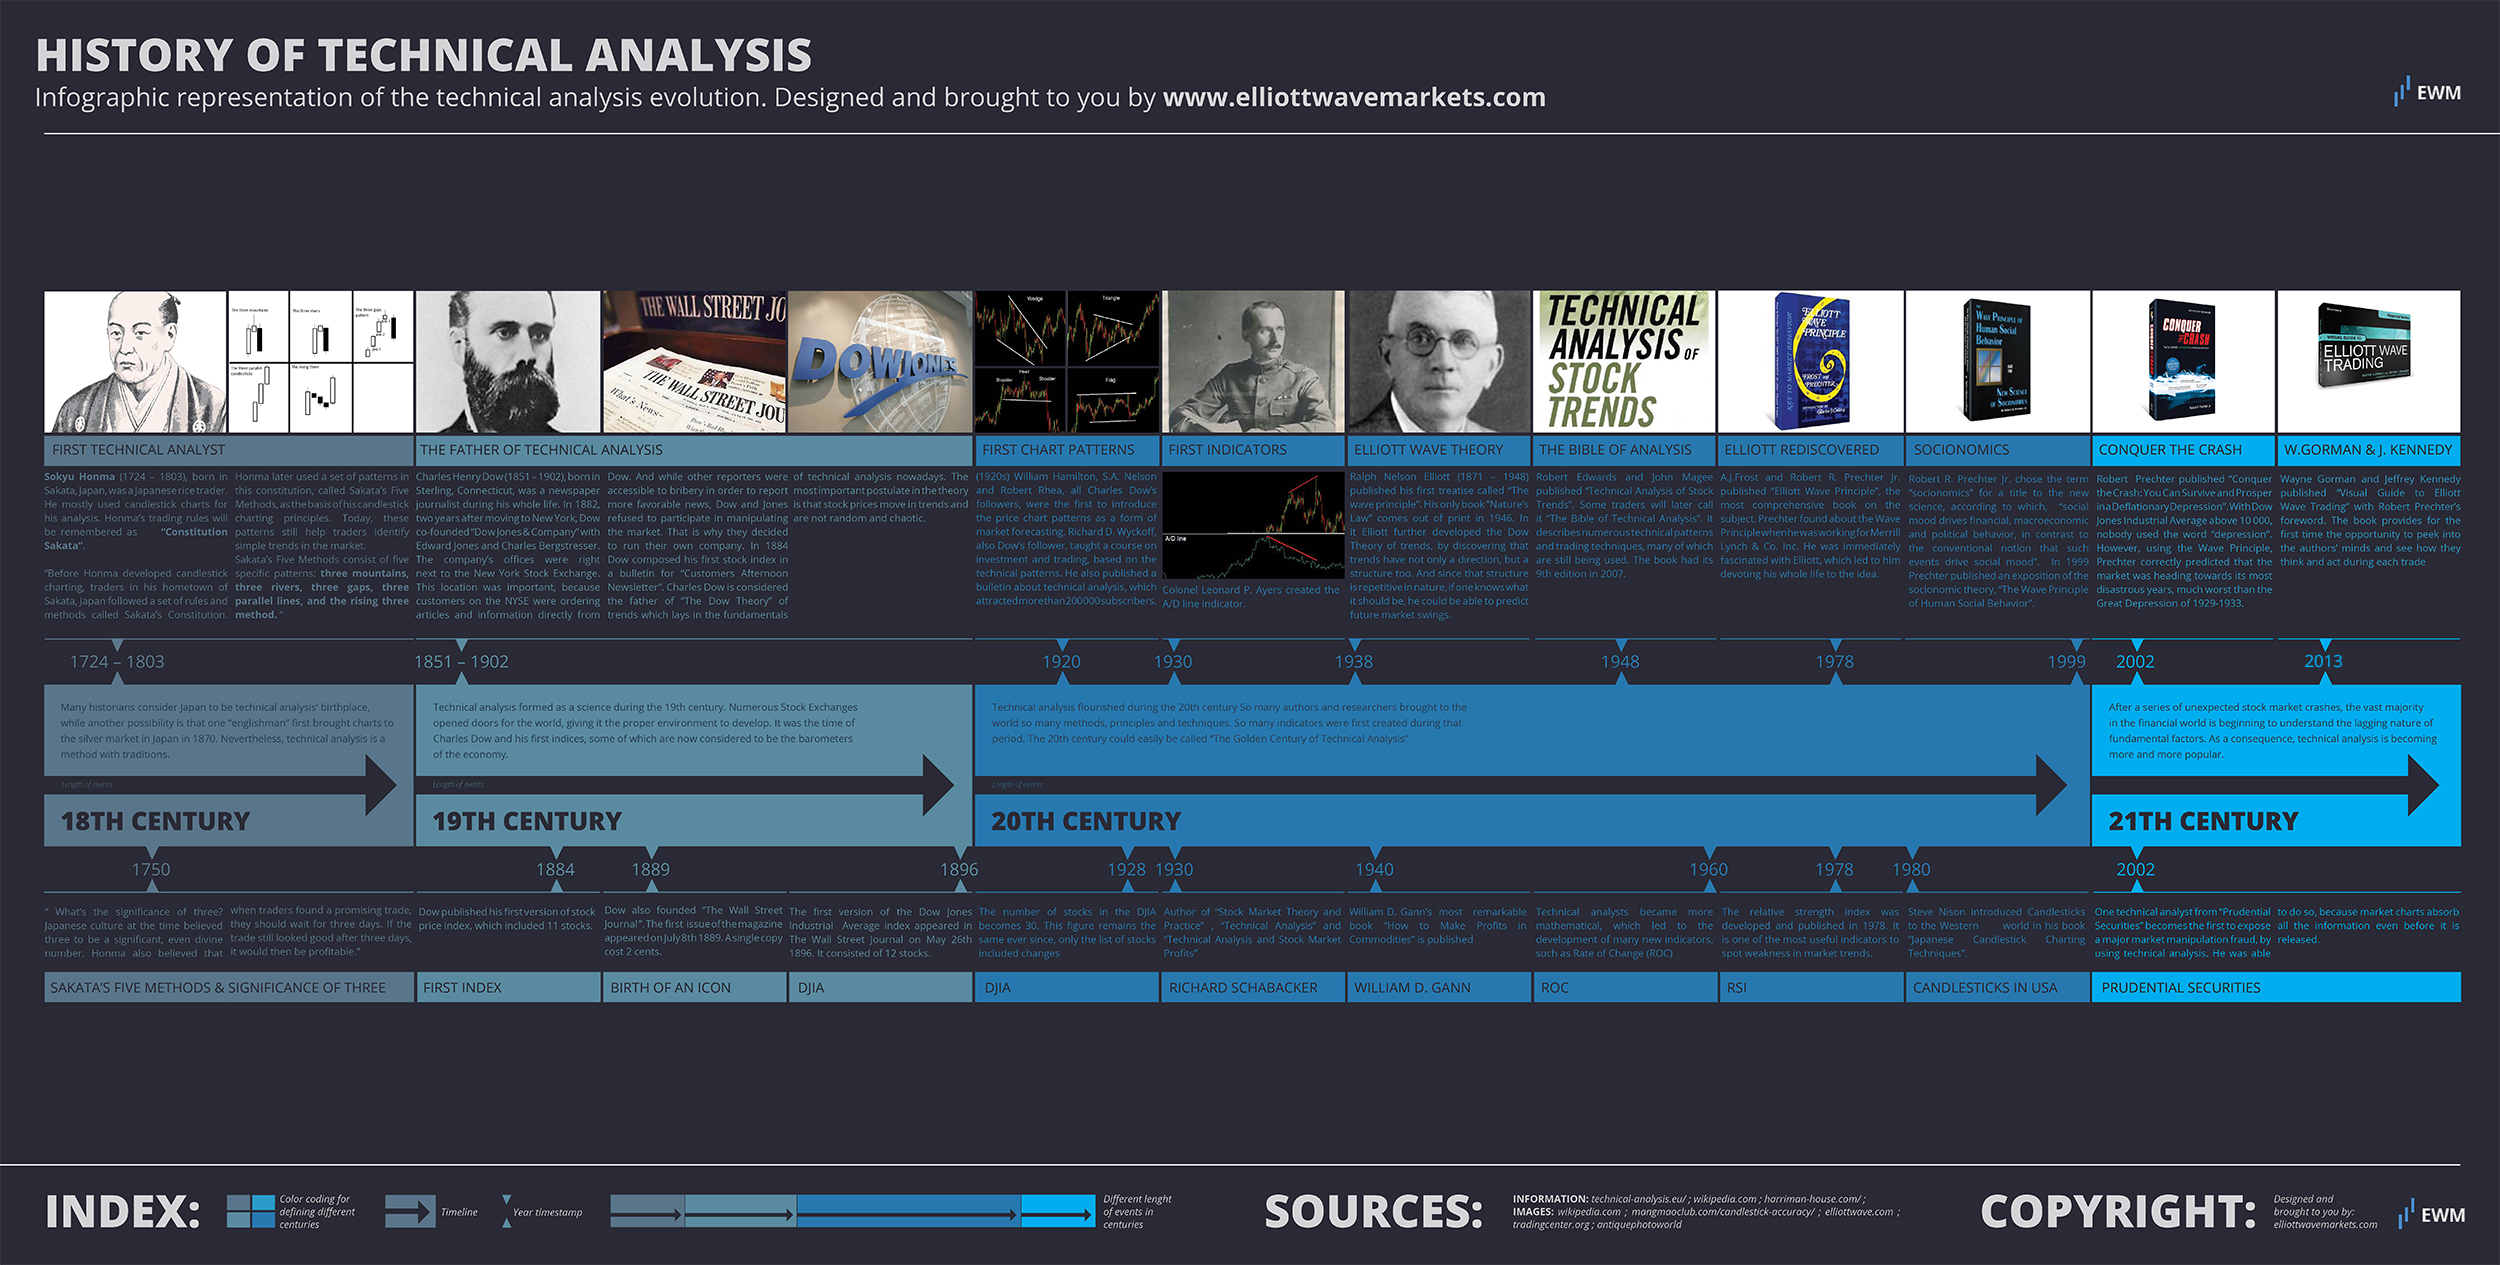 History of the technical analysis